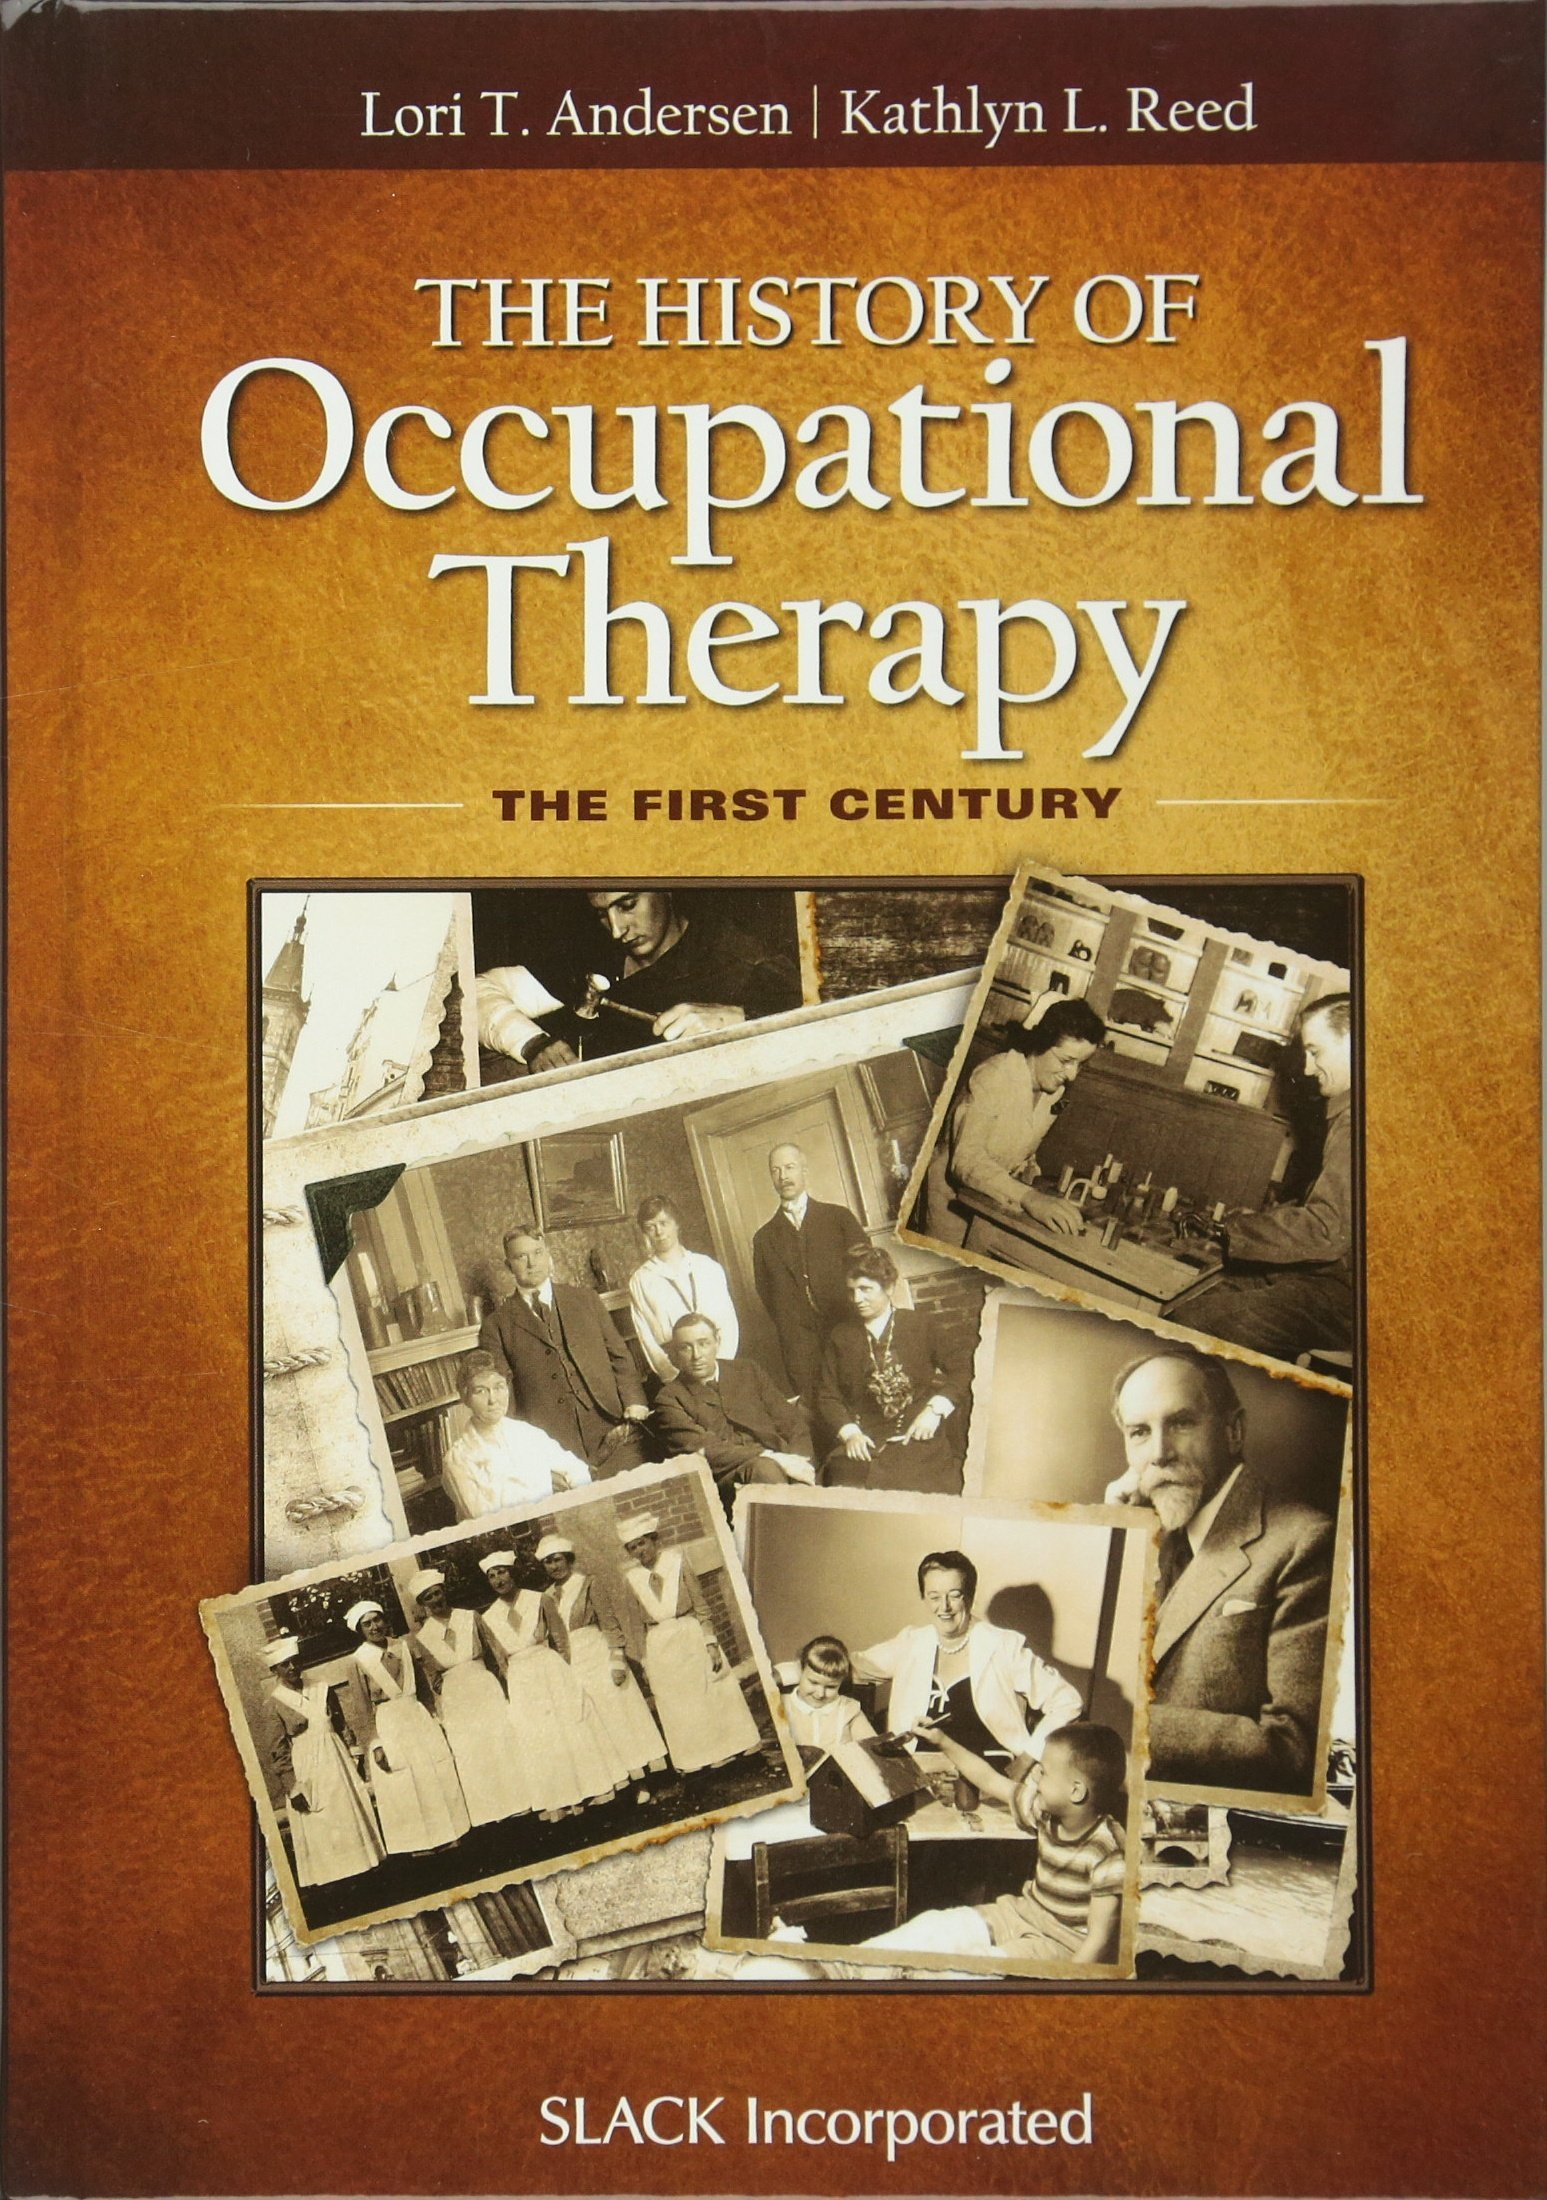 history of occupational therapy Occupational therapy emerged from the work of phillipe pinel who practised in the 18th and 19th centuries in paris and toulouse he was born on april 20, 1745 in his mother's family chateau, the son of a country doctor of small means.